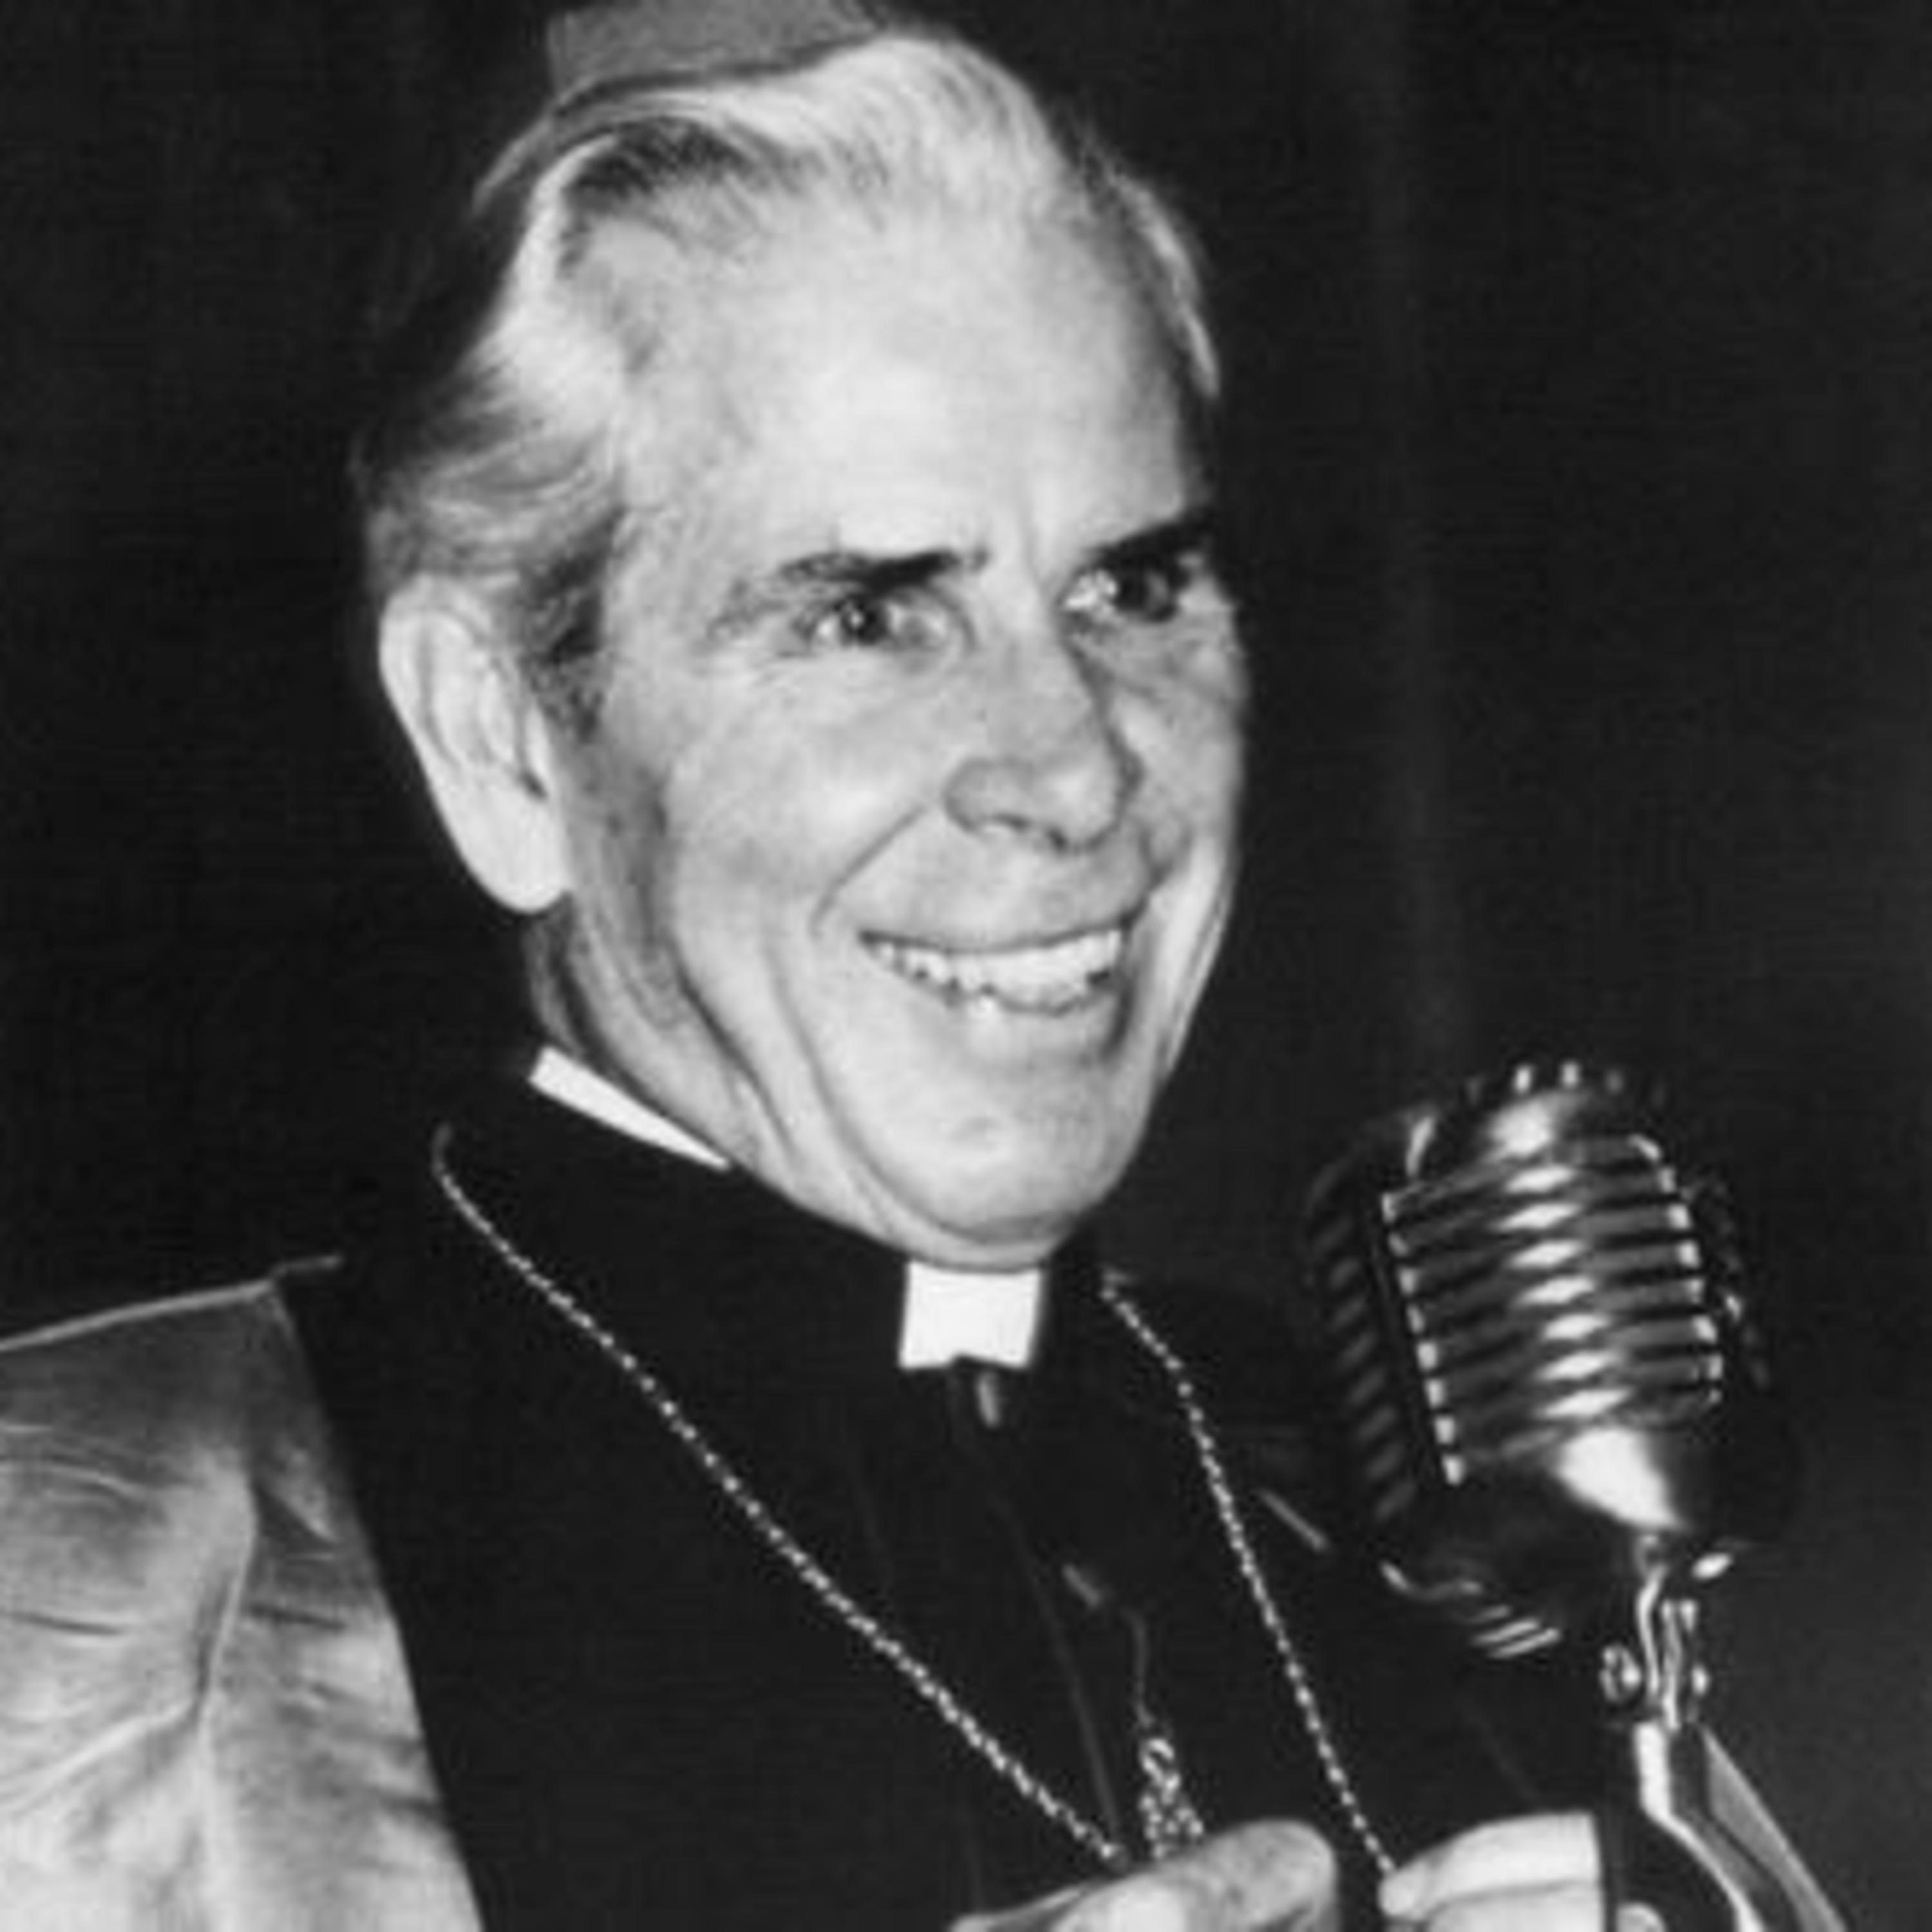 Crisis in Christendom Podcast - Fulton Sheen - The Catholic Hour - Thing We Are Fighting Against - Softpedeling Communism - Barnacles on the Ship of Democracy - Programs 2-4